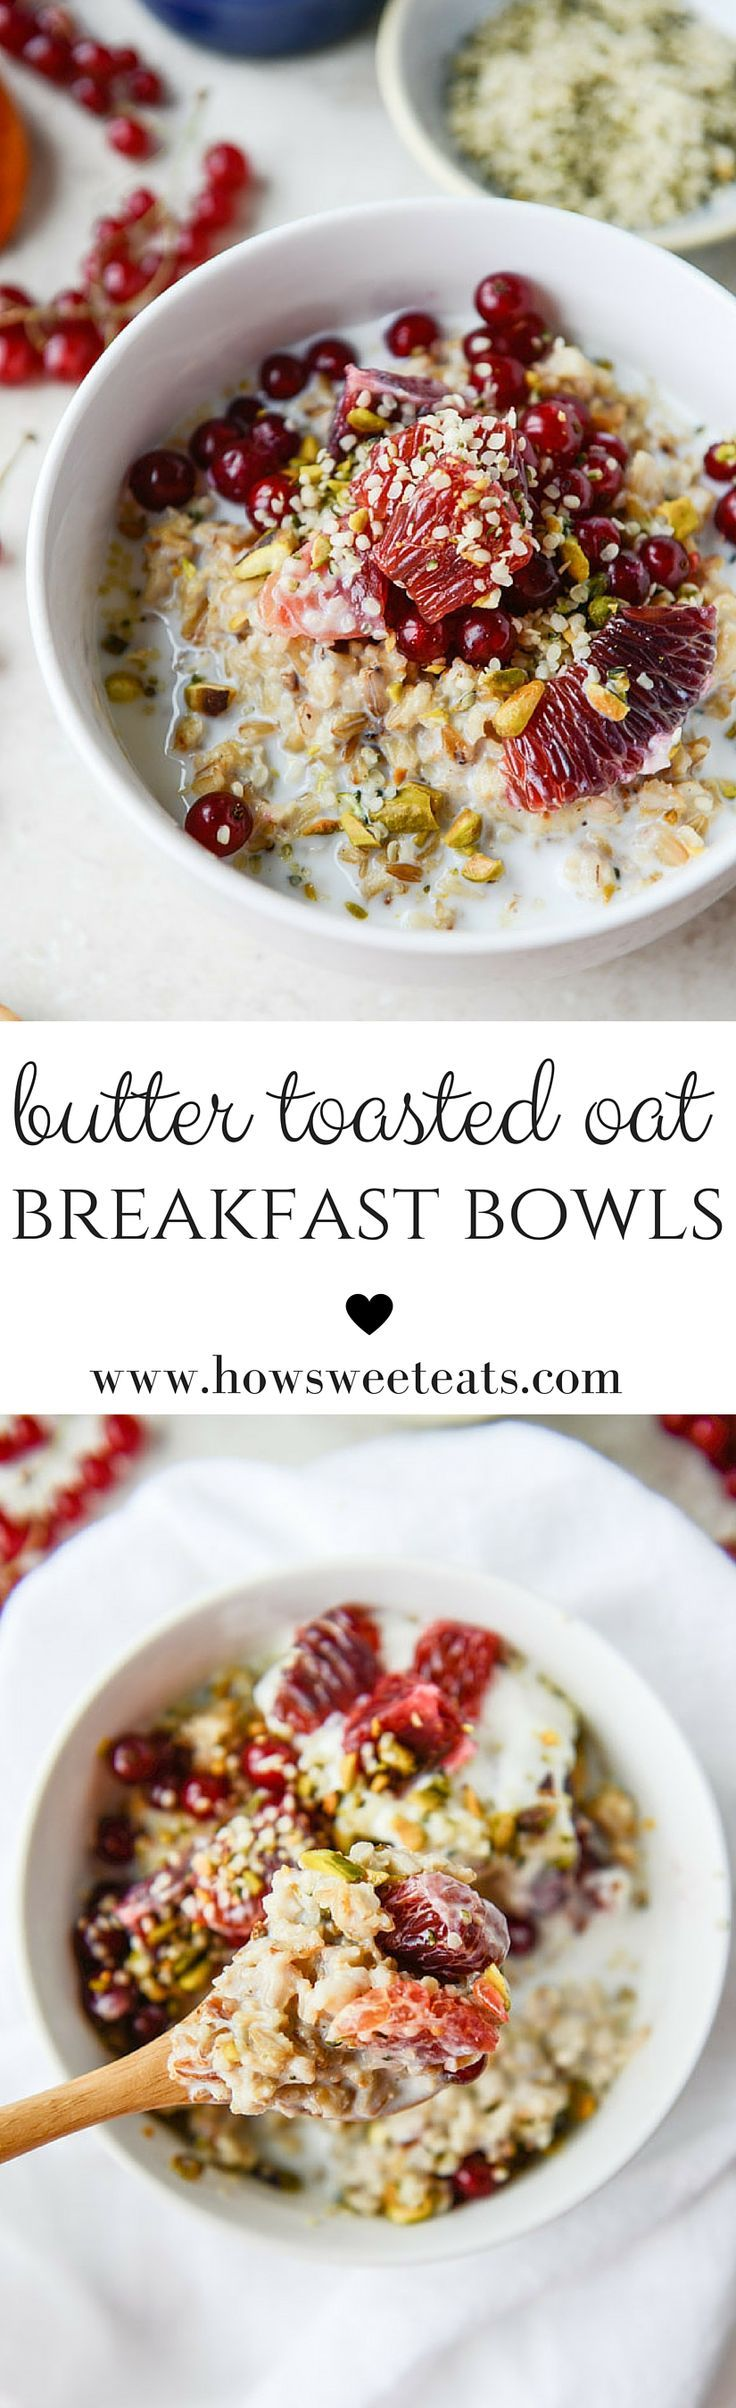 Butter Toasted Oat Breakfast Bowls by /how/ sweet eats I http://howsweeteats.com